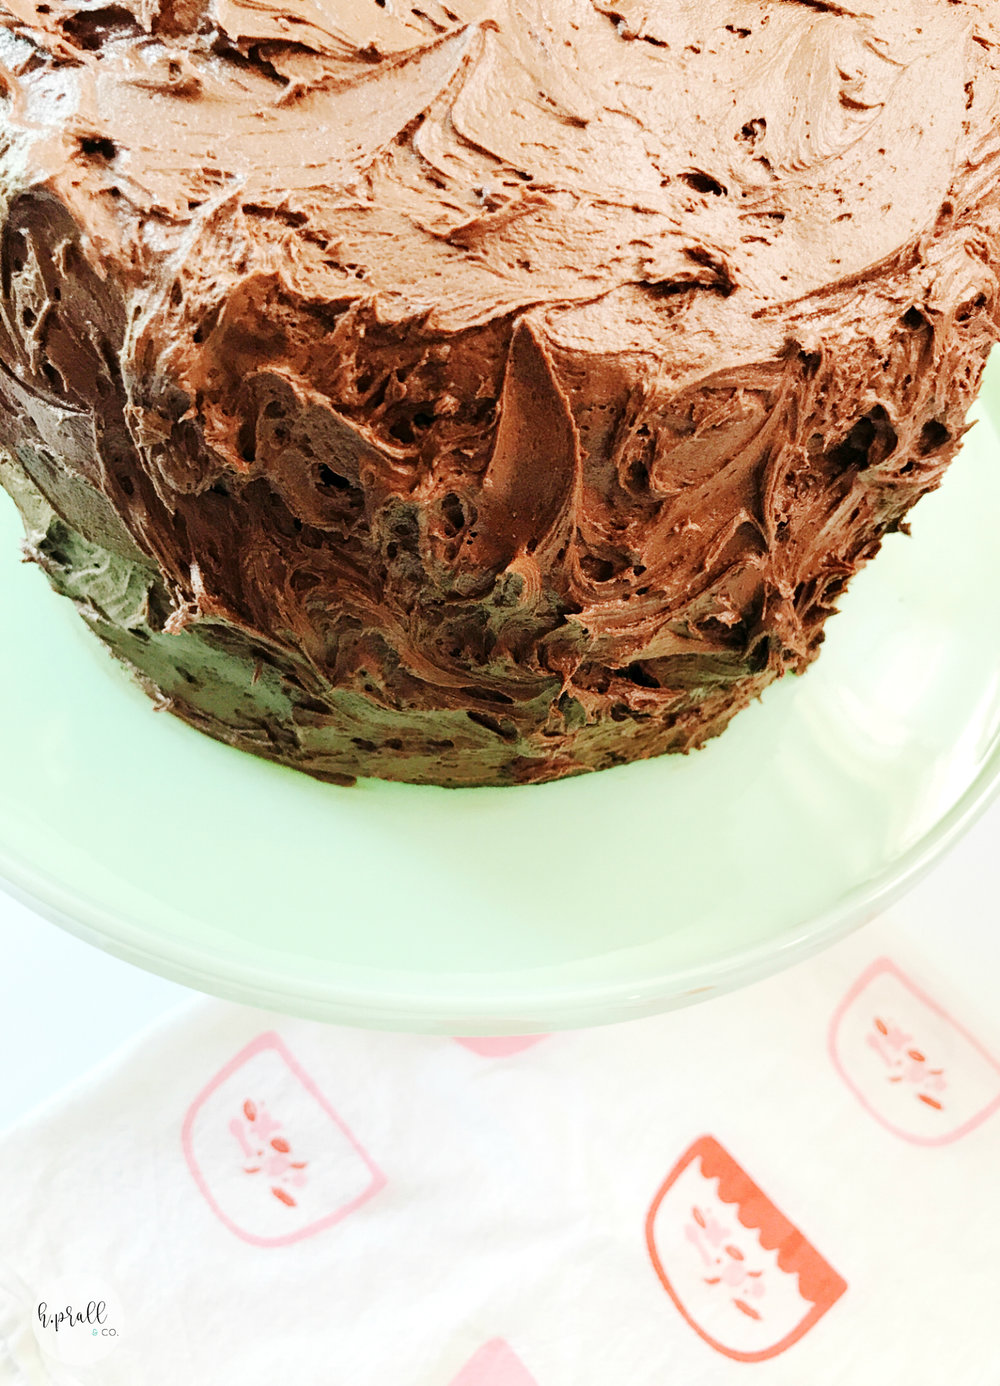 Triple Layer Chocolate Cake on a cake stand from H.Prall & Co. | Interior Decorating Blog | hprallandco.com